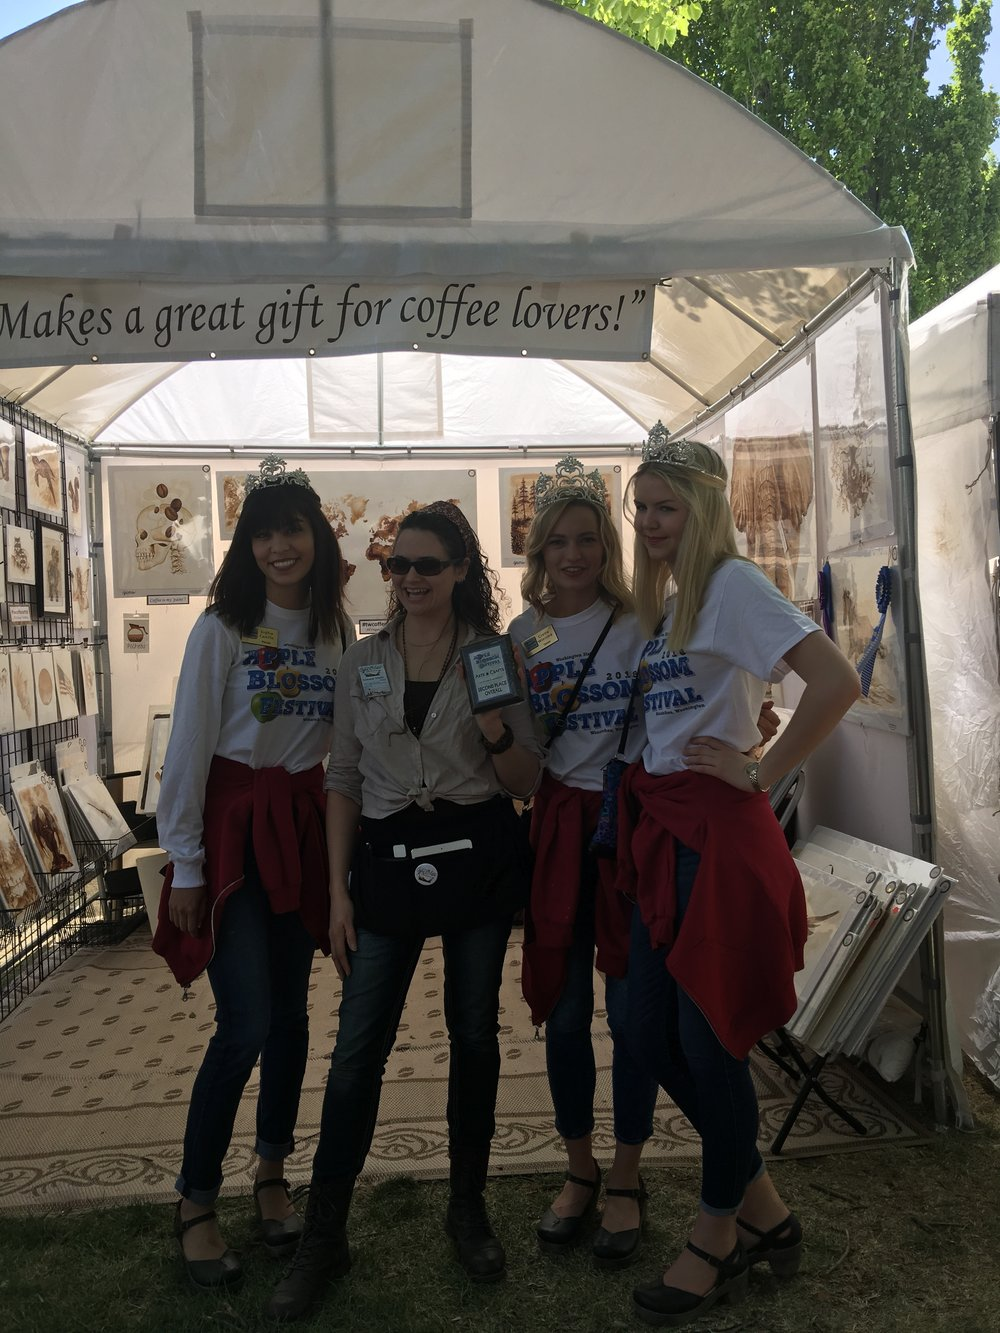 Festival Princesses presented me a second place award for my booth dispaly